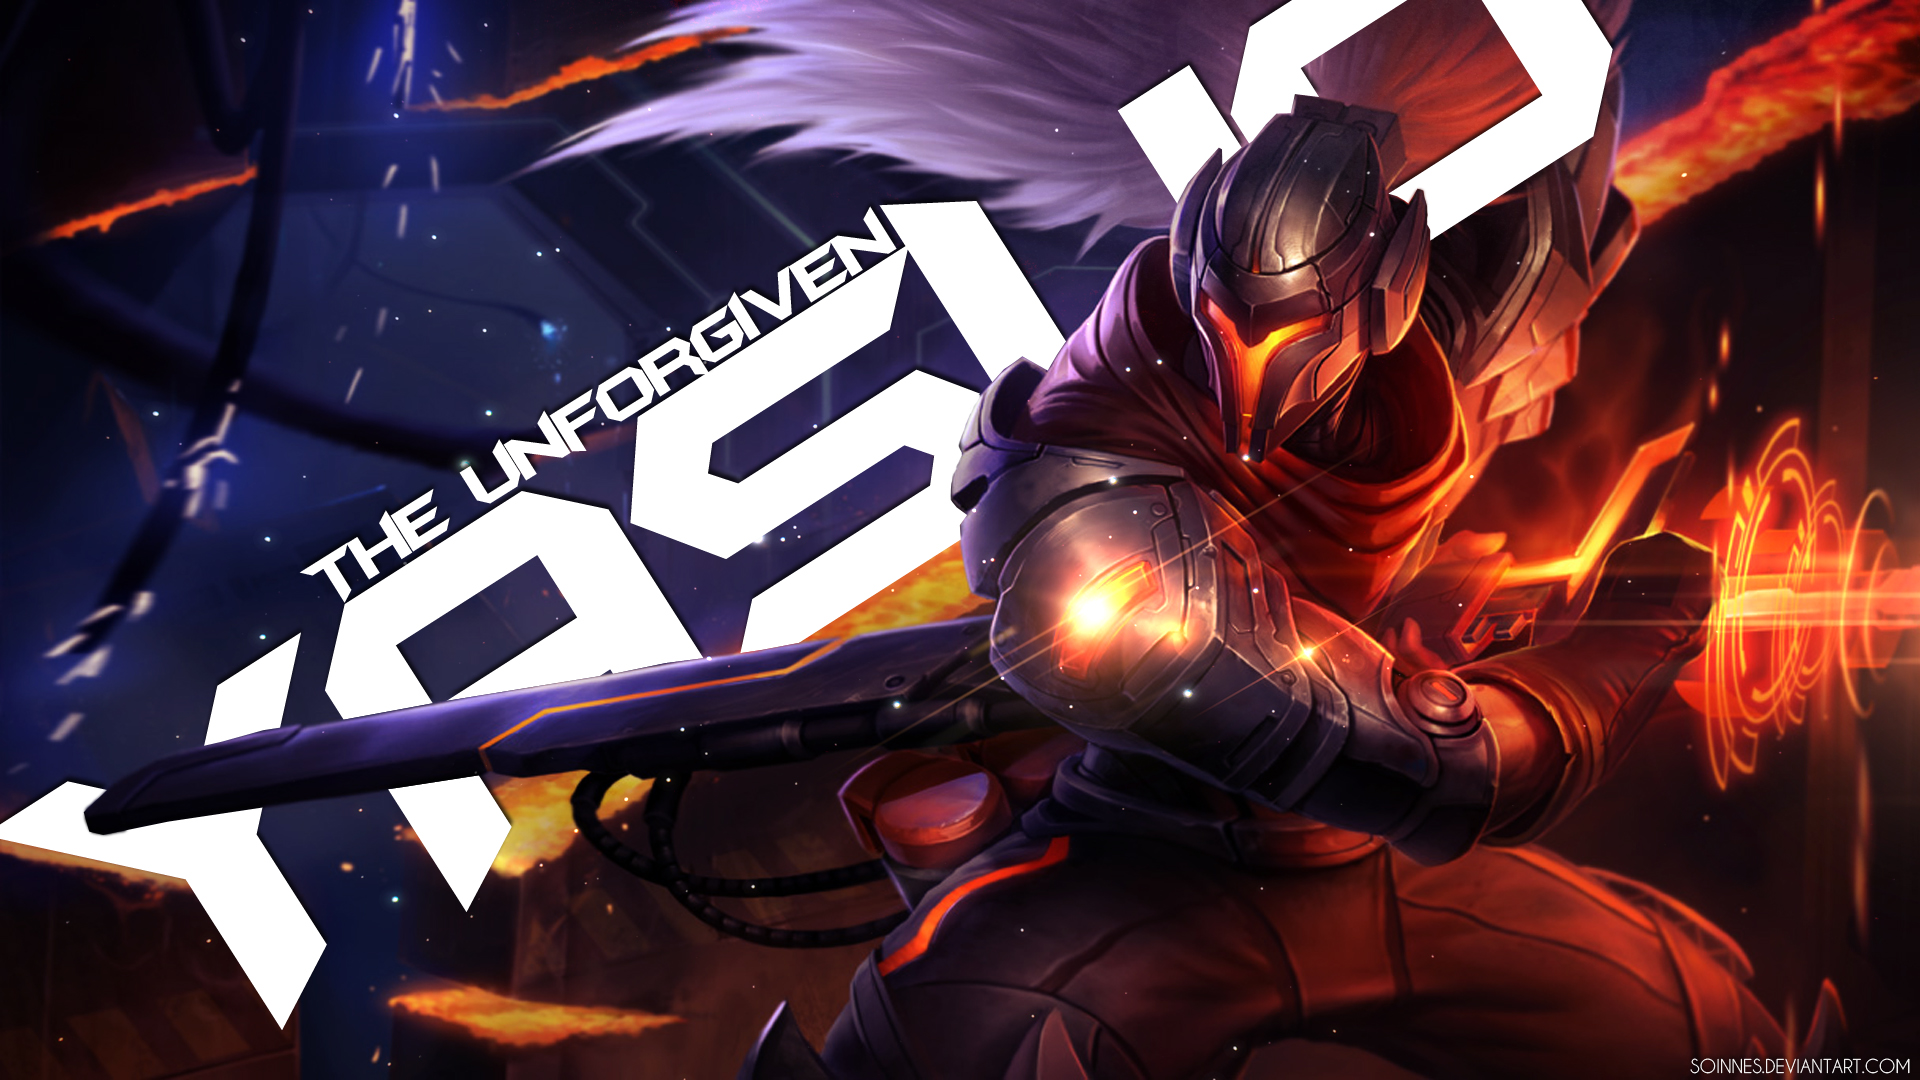 49 Project Yasuo Wallpaper Hd On Wallpapersafari